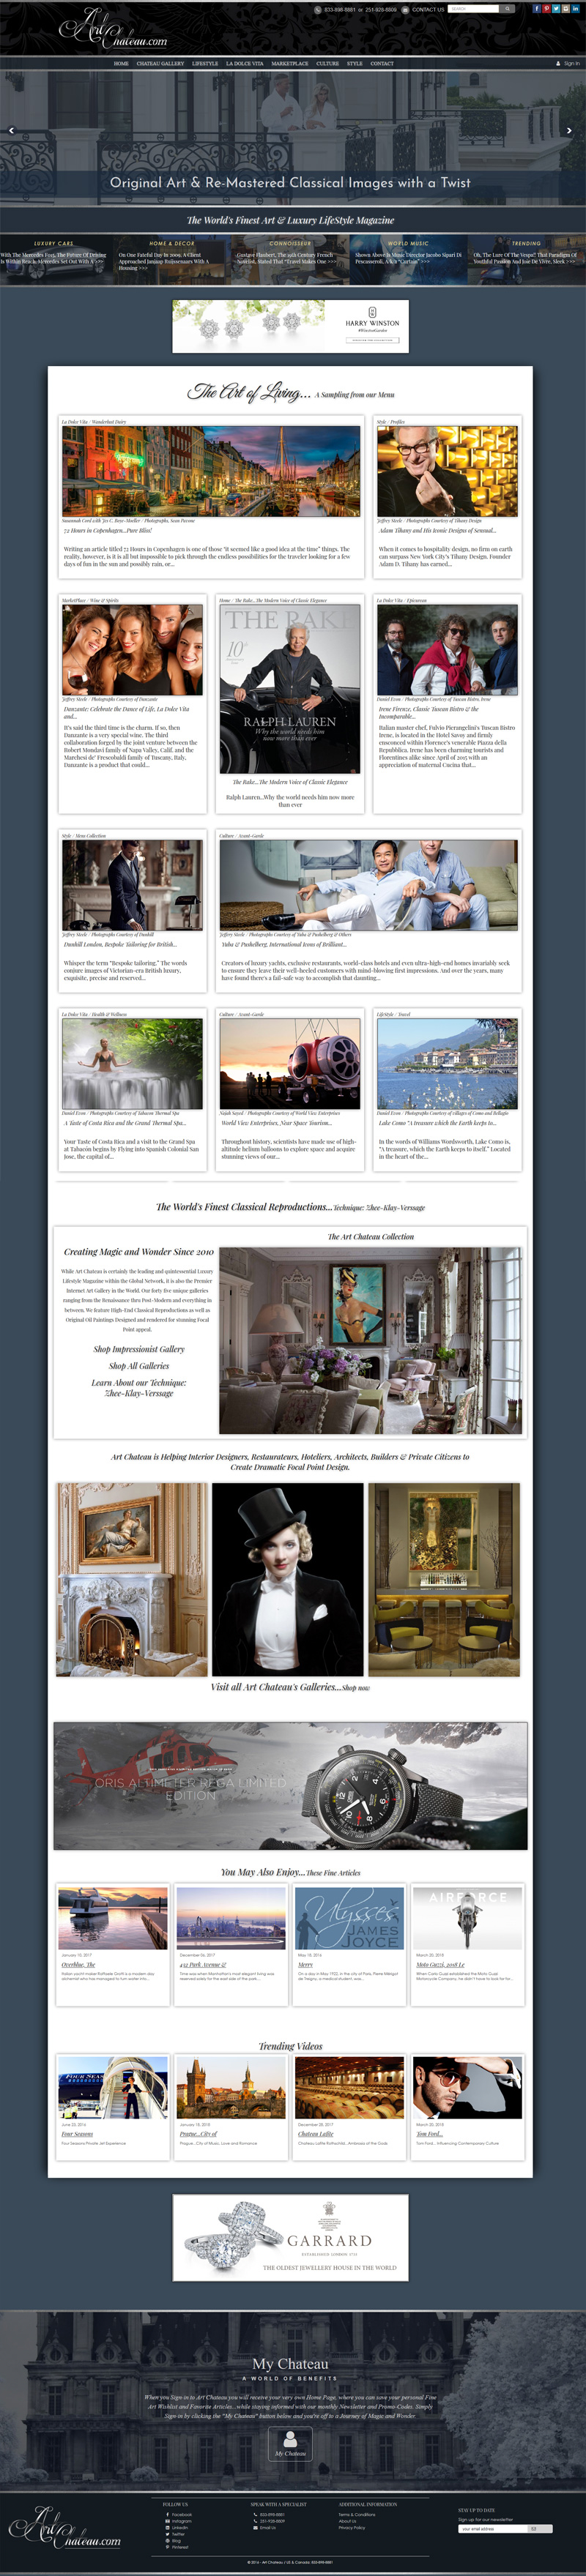 Artchateau Artchateau Magazine and E-Commerce Website